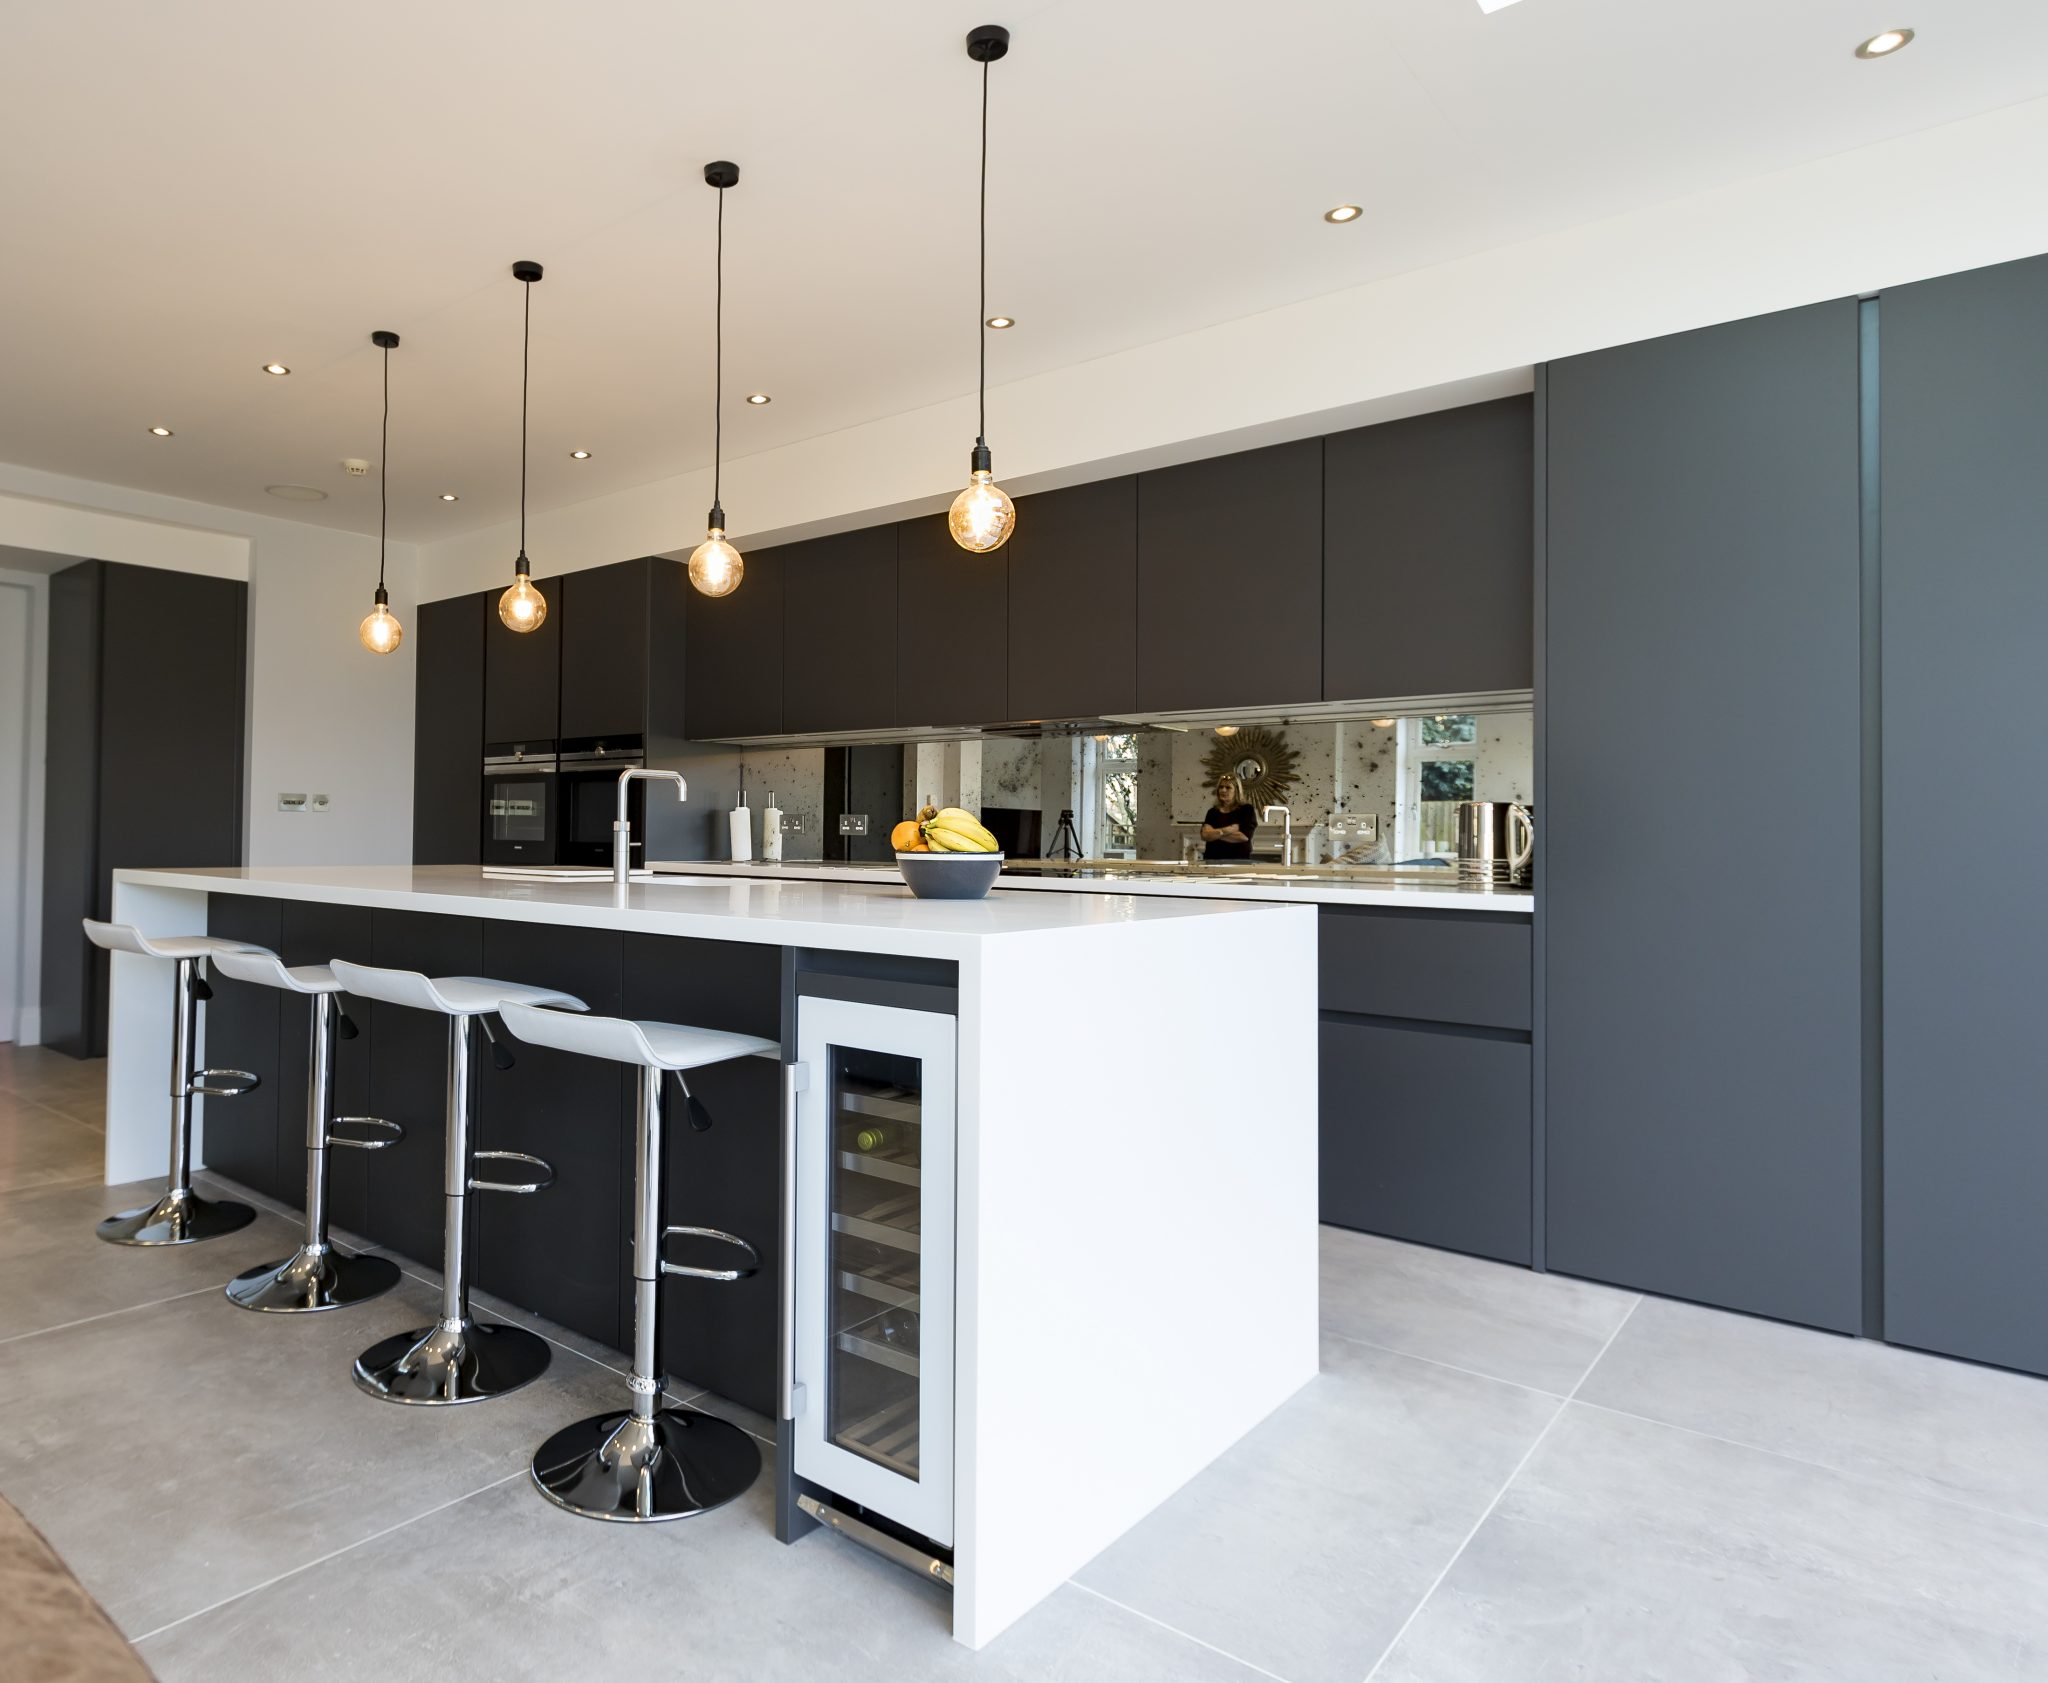 Kitchen trends 2018 get inspired with our amazing for Kitchen ideas 2018 grey